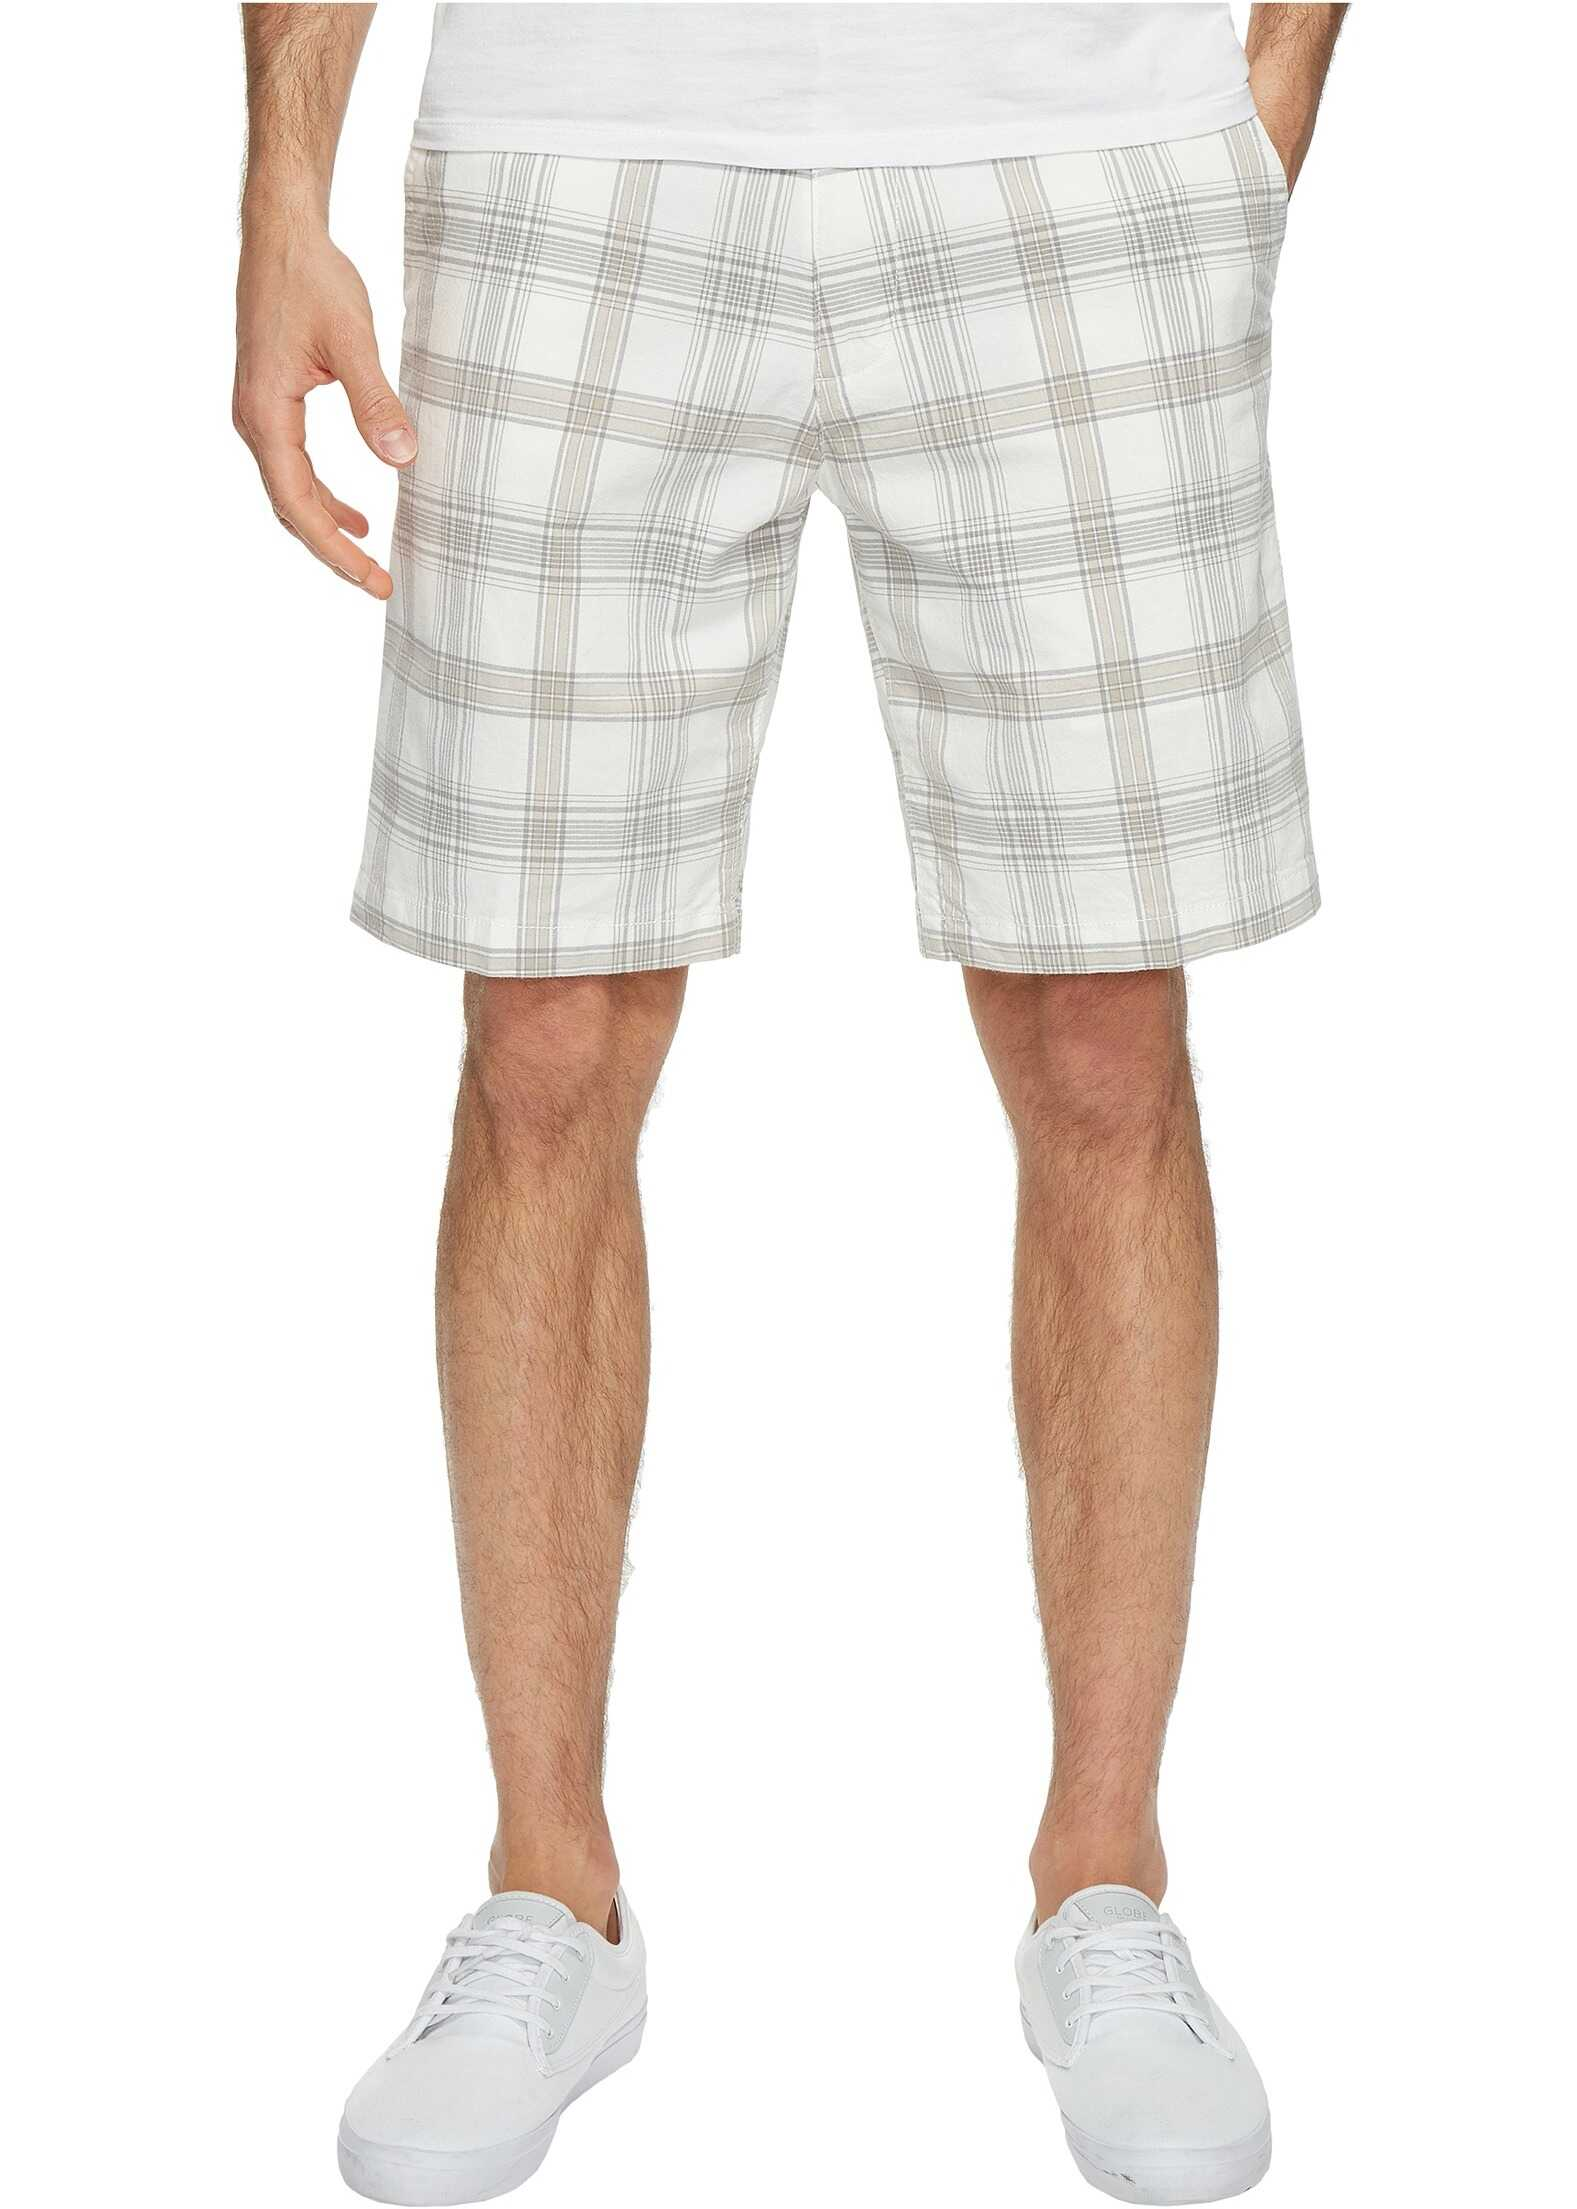 Dockers Perfect Short Classic Fit Flat Front White Plaid